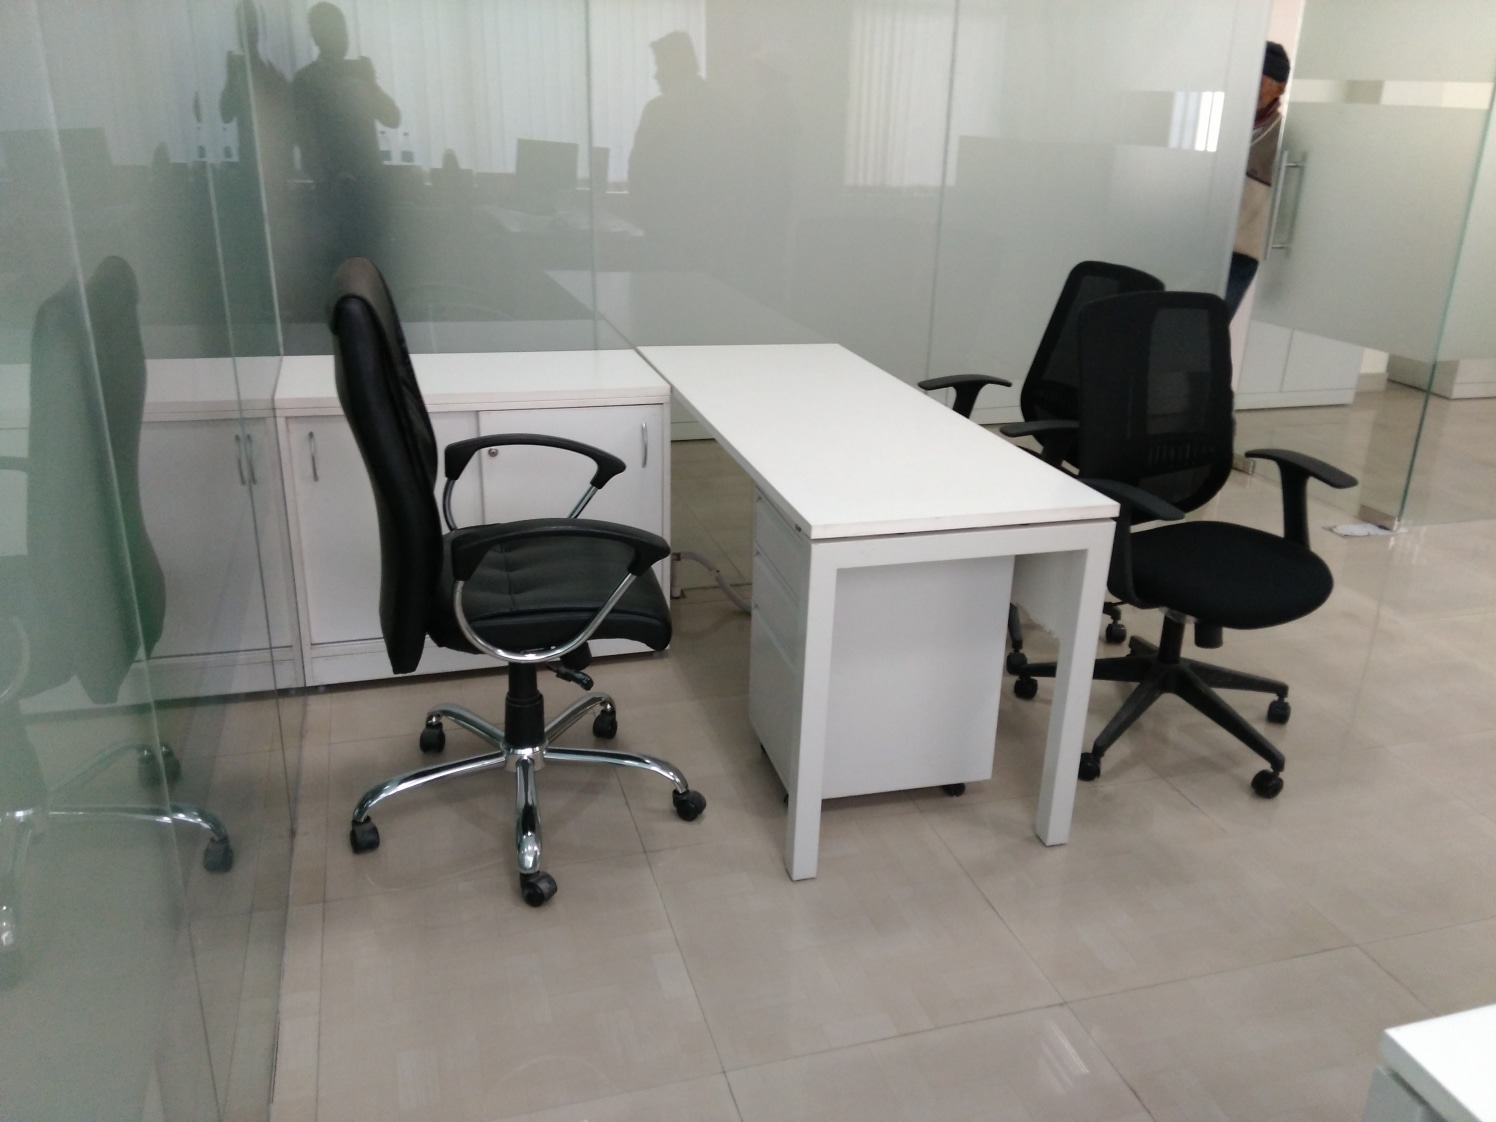 Meeting Room With White Table And Black Chair by Abhinav Jain | Interior Design Photos & Ideas